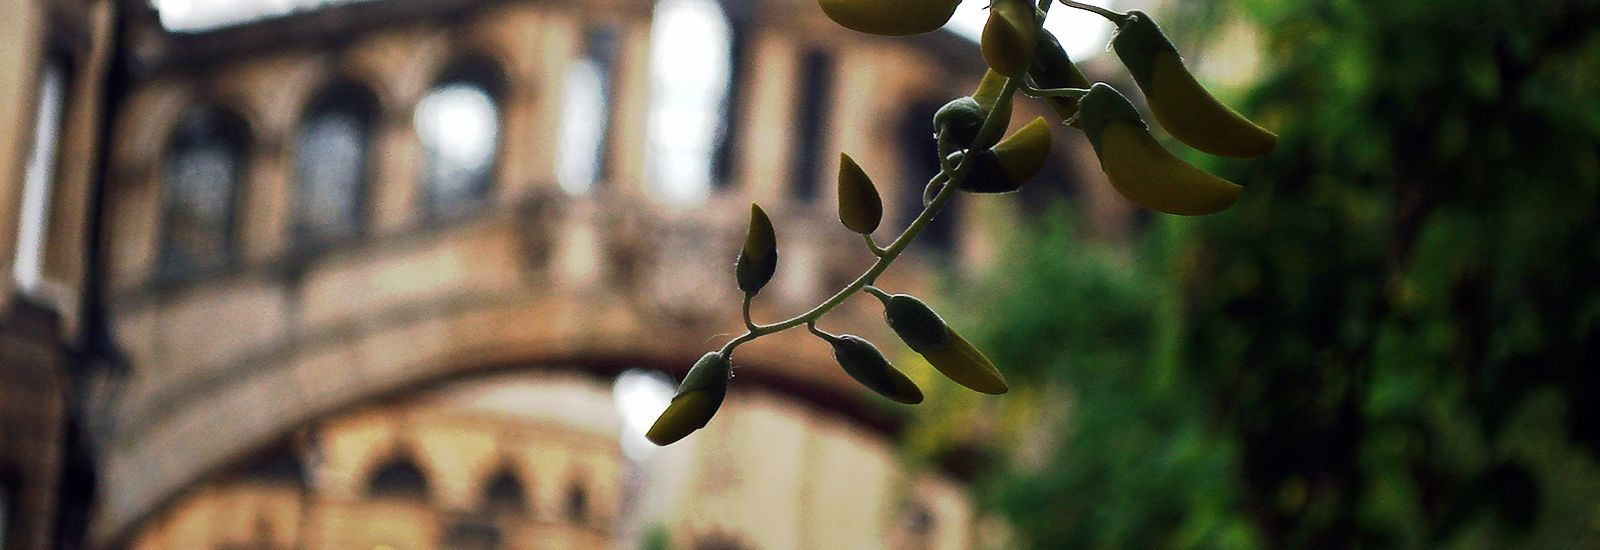 Close up of a plant infront of the Bridge of Sighs